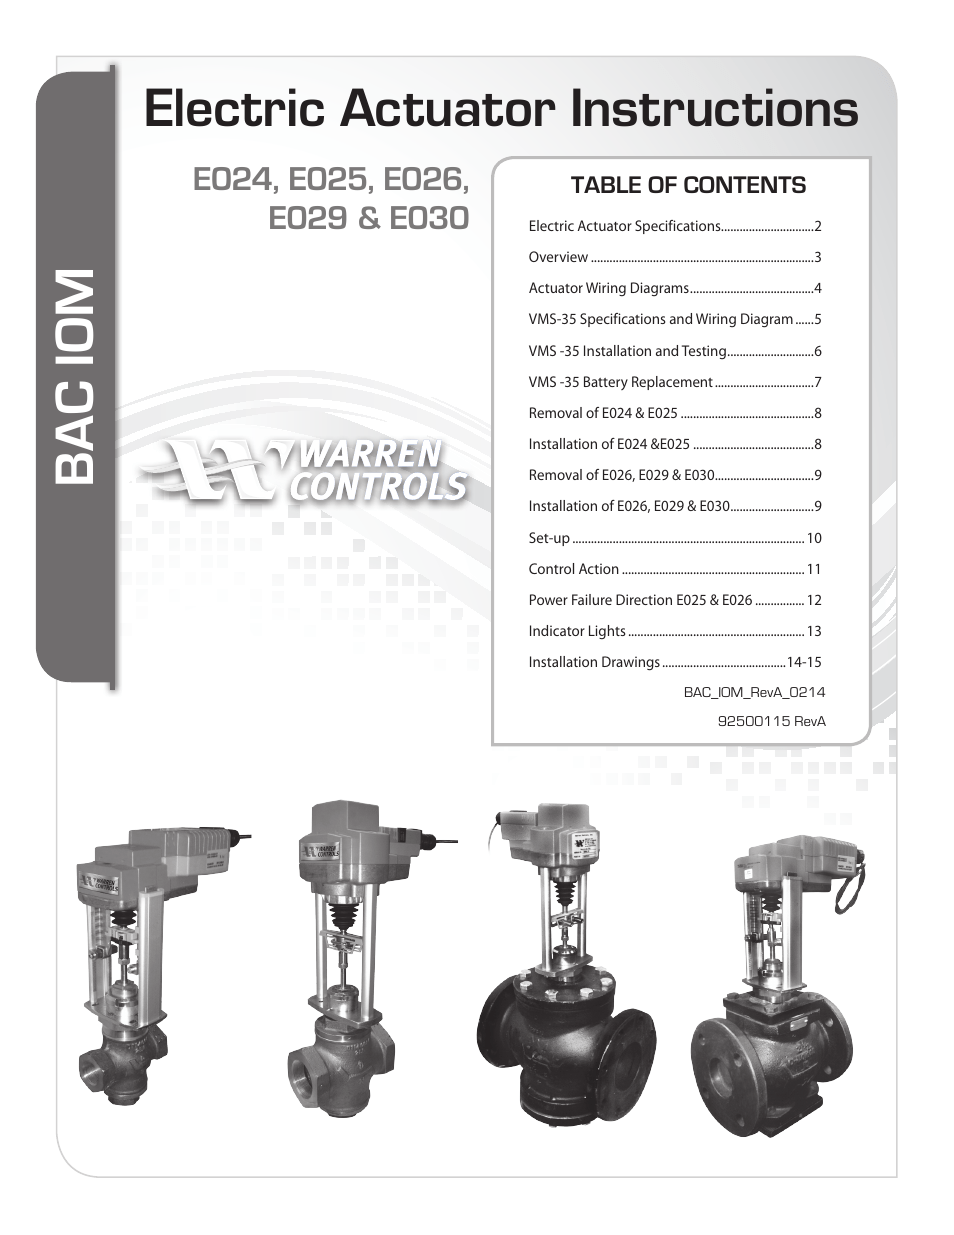 medium resolution of warren controls e030 electric actuator user manual 16 pages also for e029 electric actuator e026 electric actuator e025 electric actuator